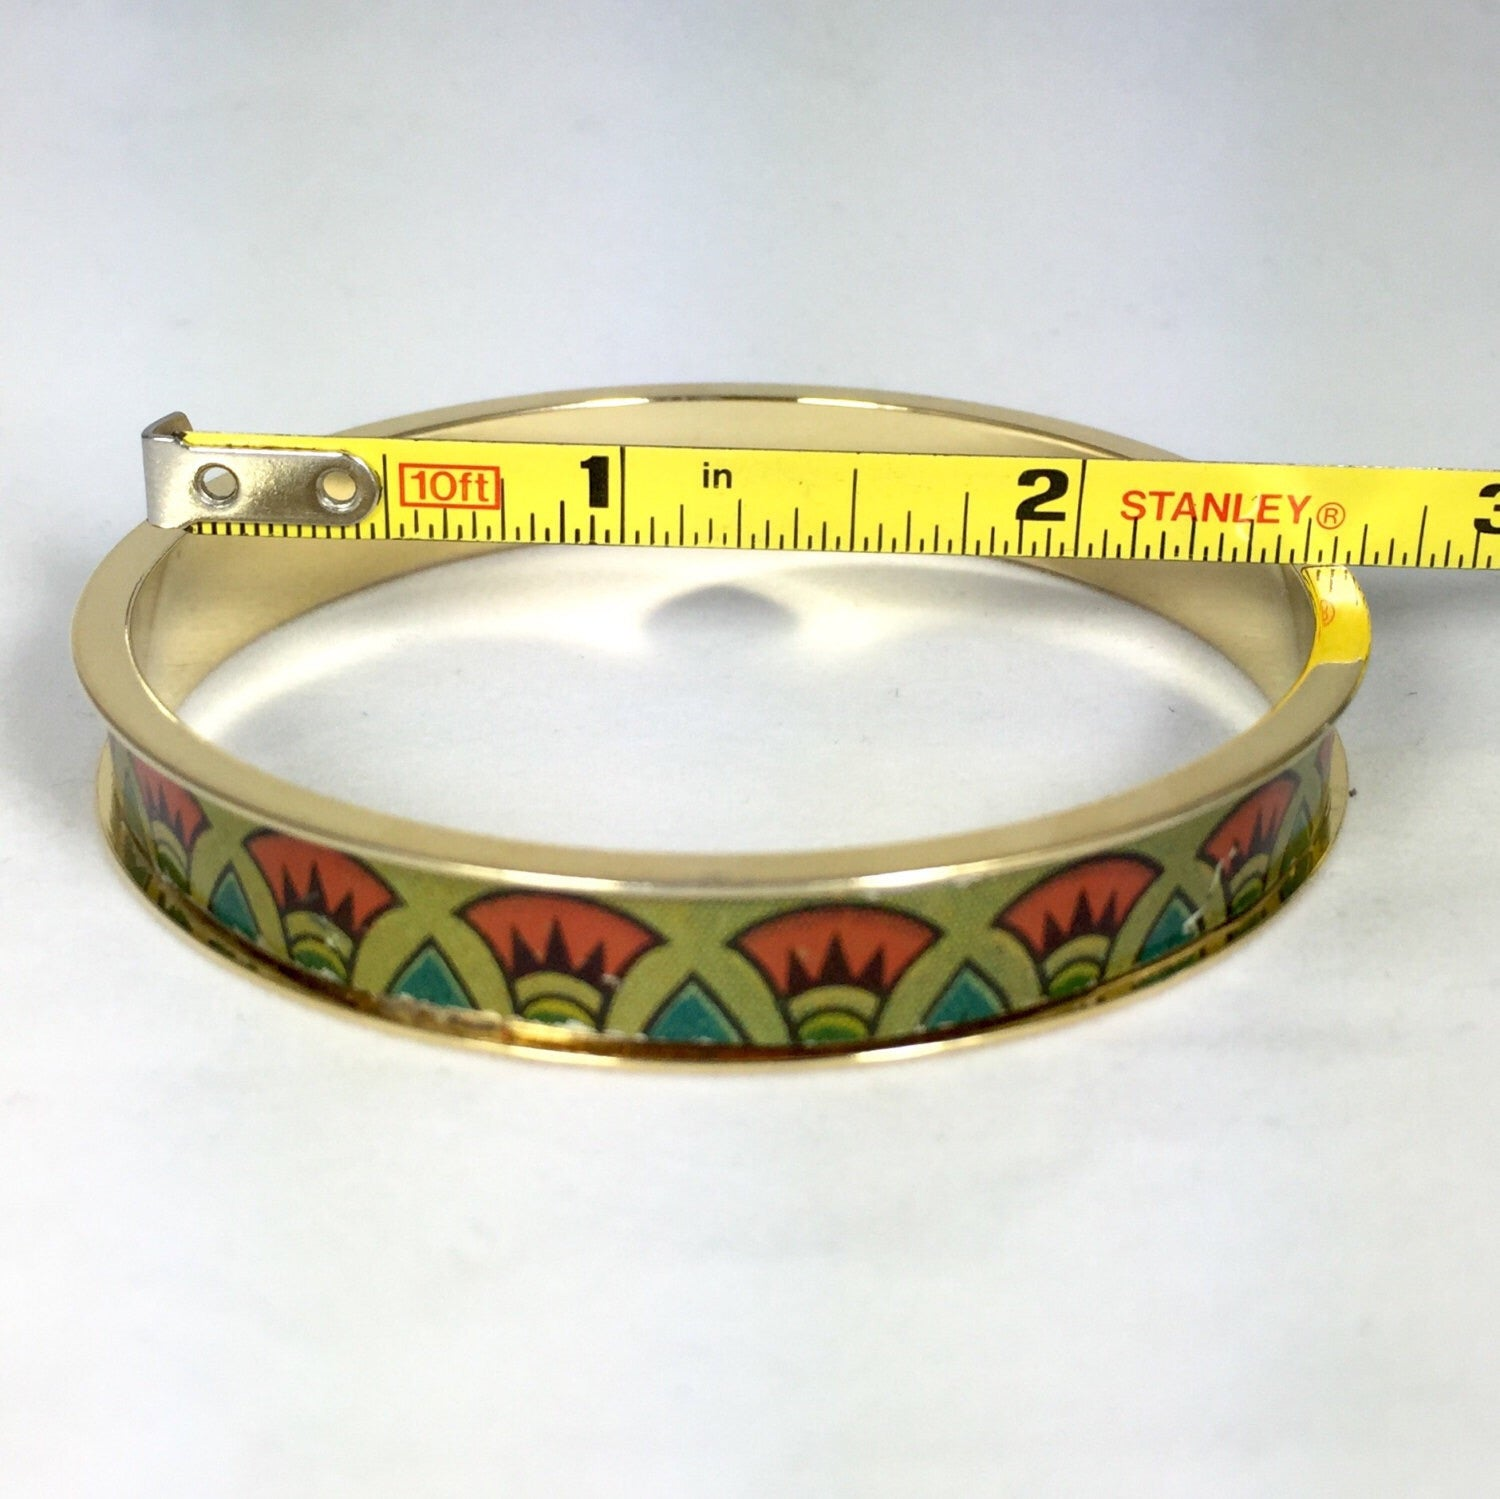 2- 24kt gold plated bangle fitted with a with vintage tin inlay.  The biscuit tin design includes Egyptian style red and green flowers.  The inside measurement of the bangles is approximately 7 3/4''. around.